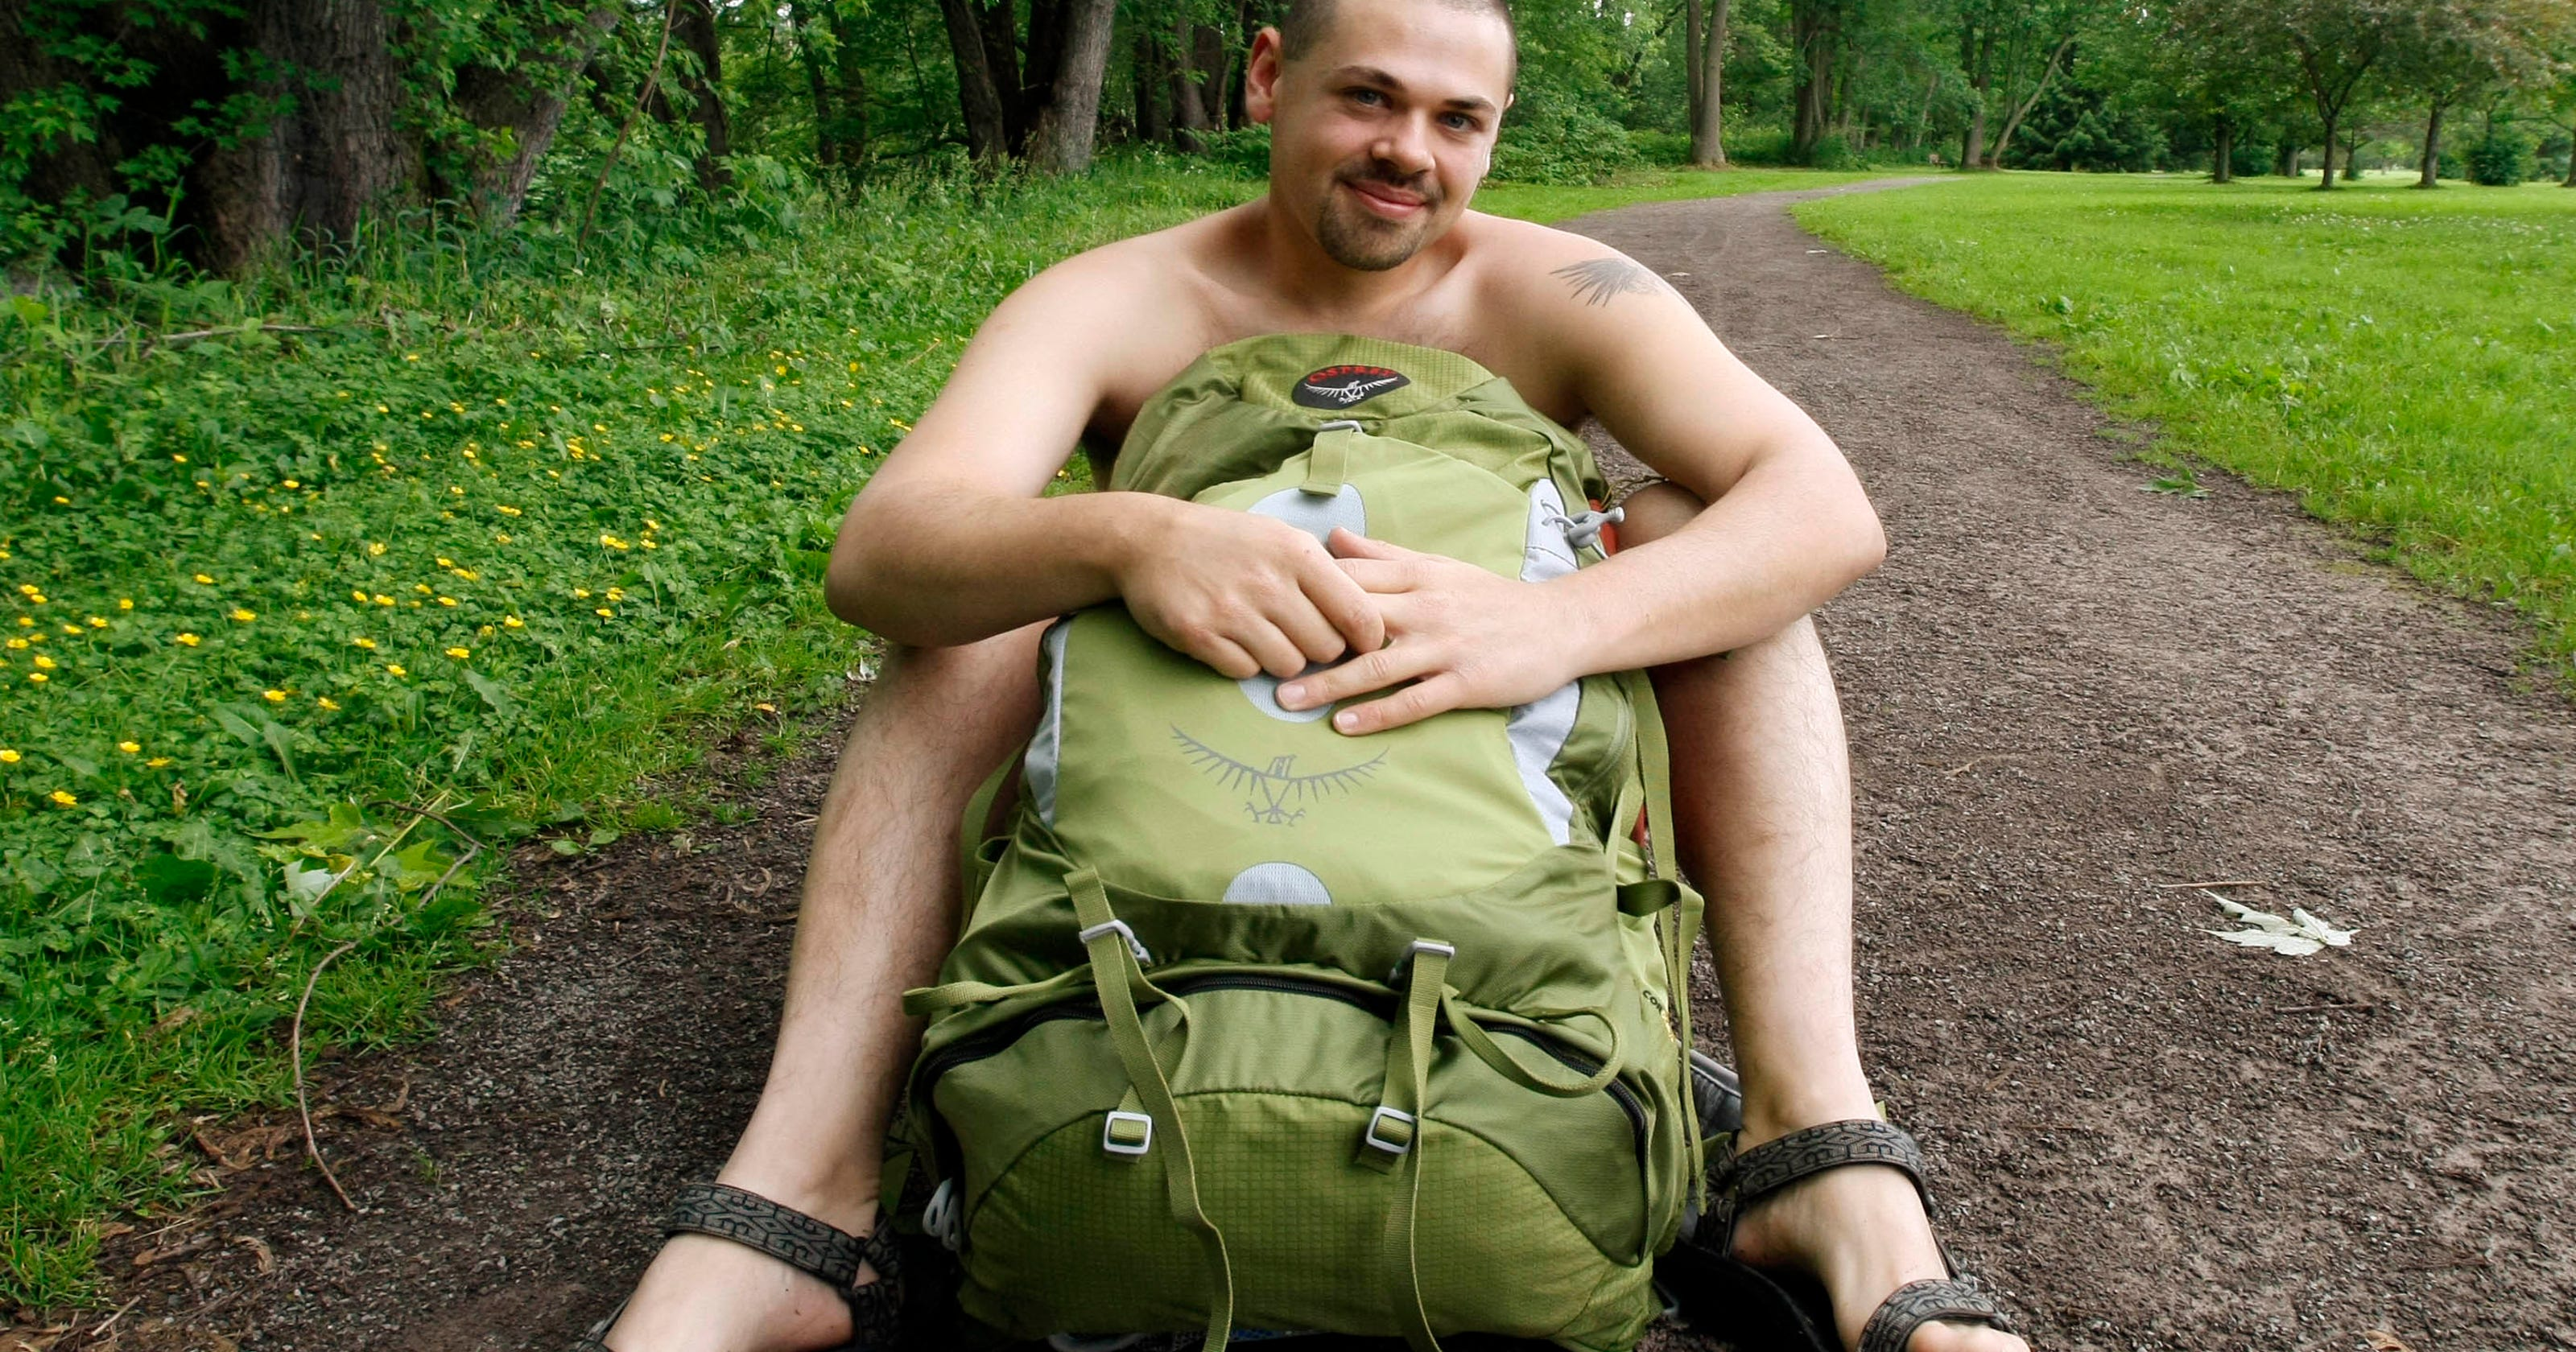 Nude Hiking Day: City says keep your pants on